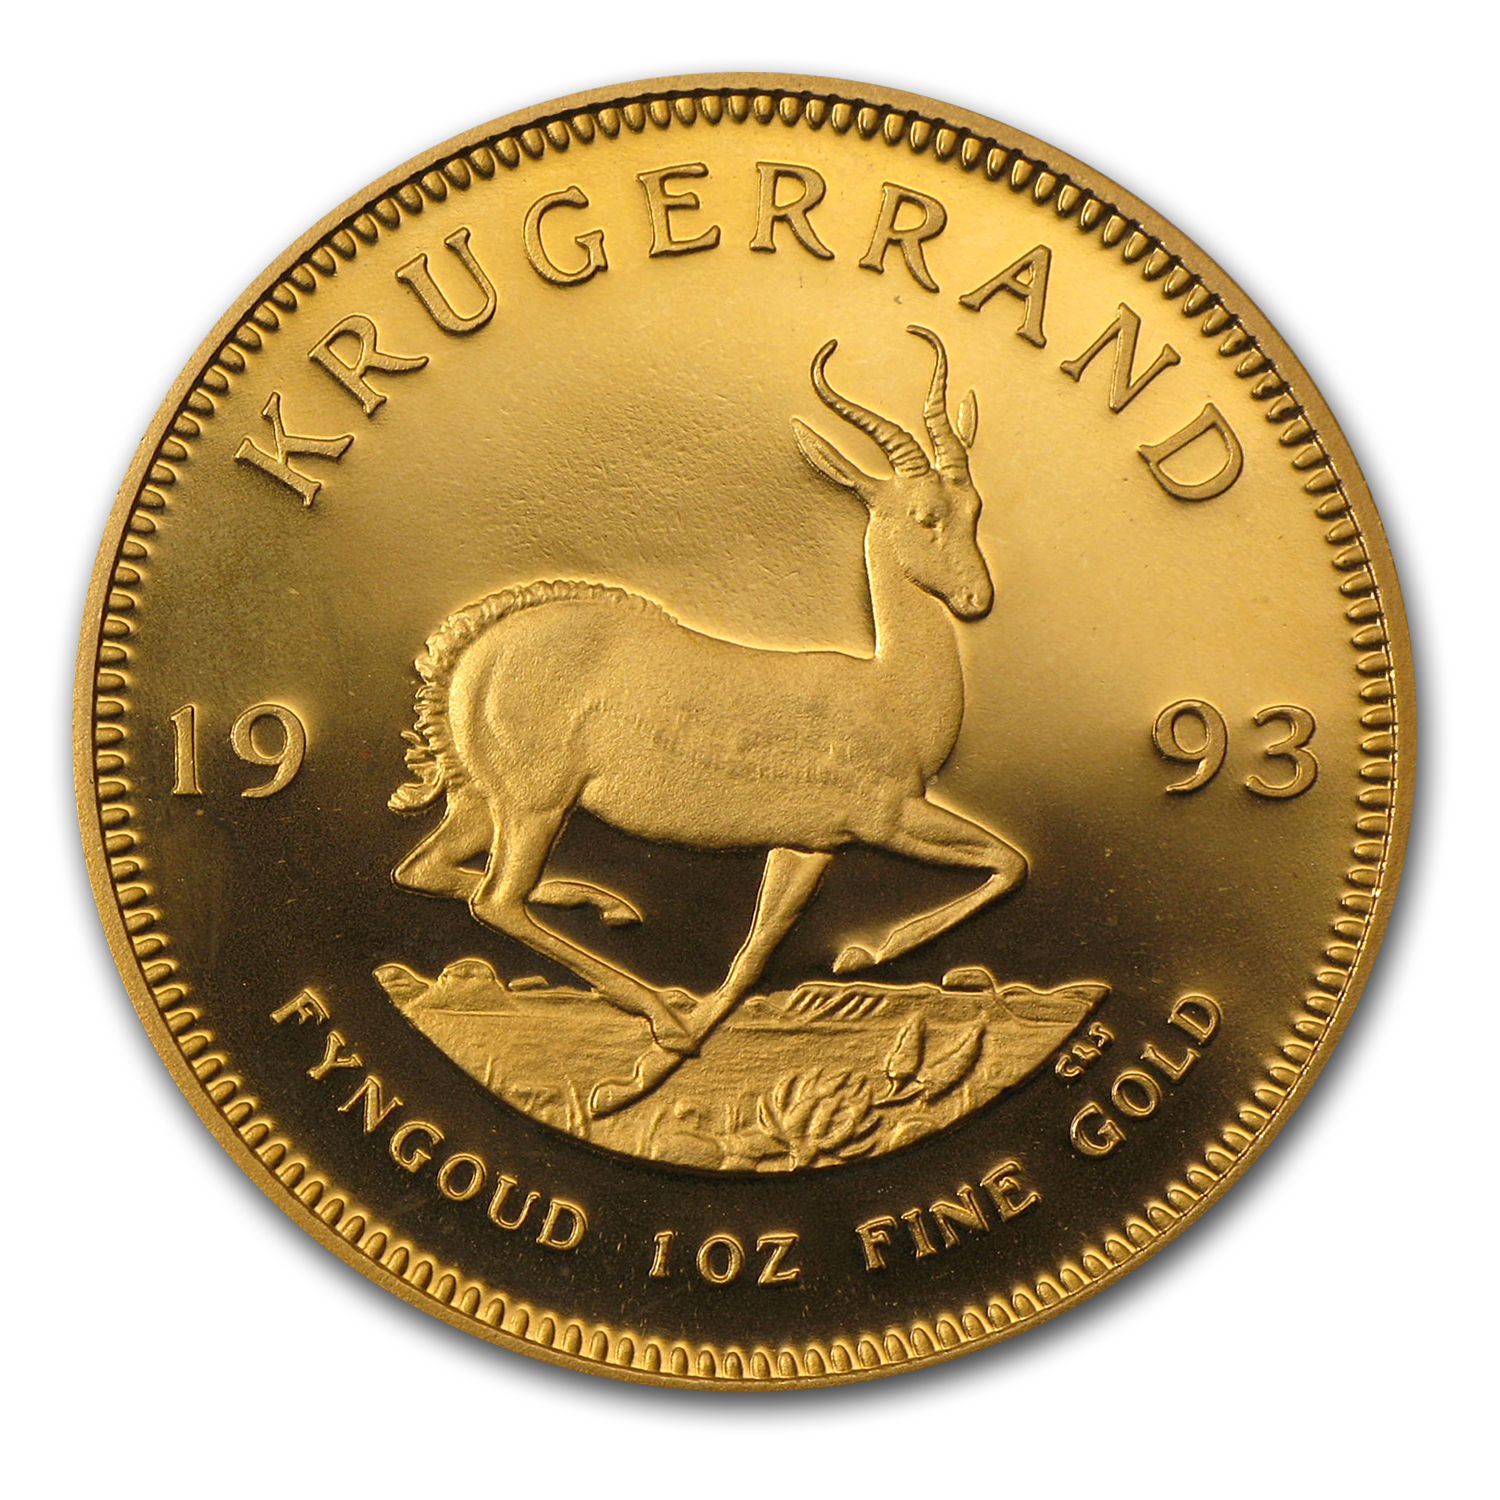 1993 South Africa 1 oz Proof Gold Krugerrand